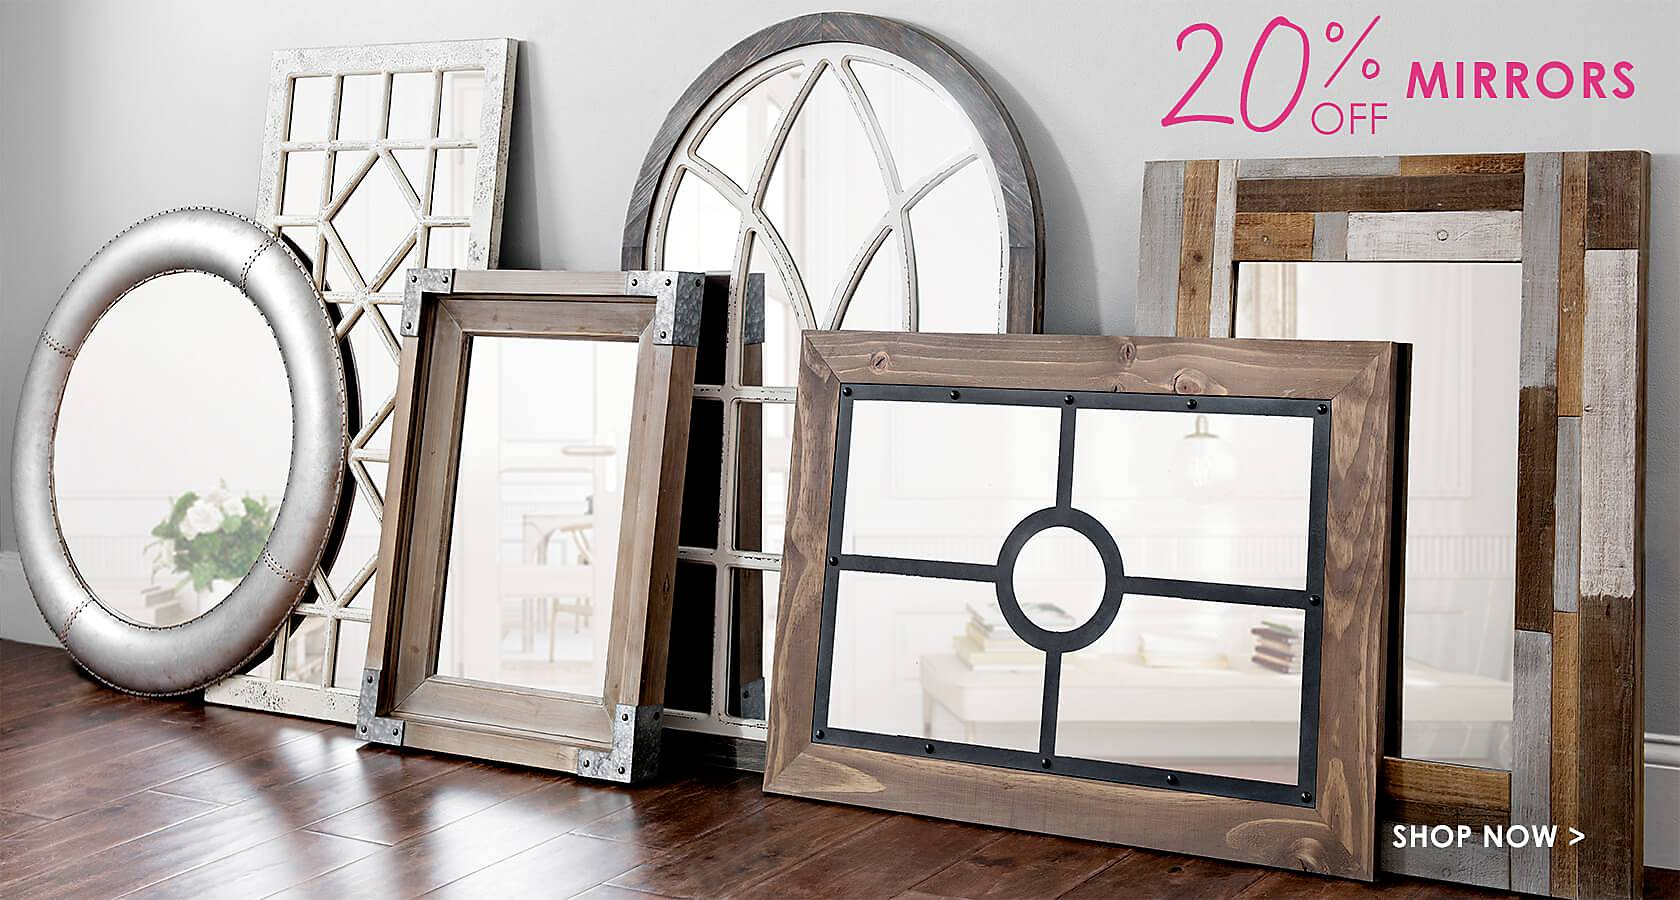 20% Off Mirrors - Shop Now